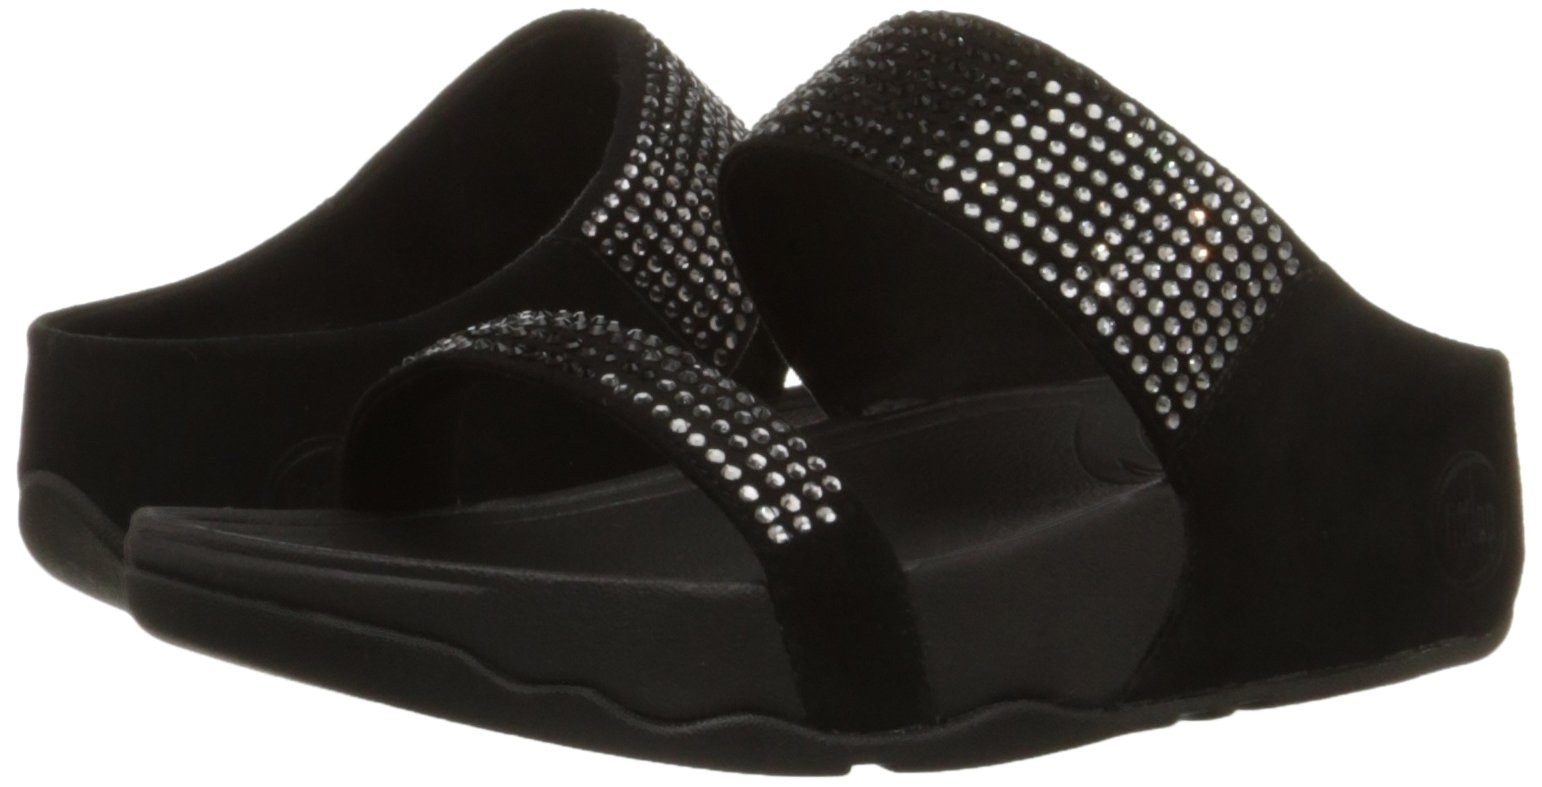 Fitflop Womens Flare Slide Sandal Black